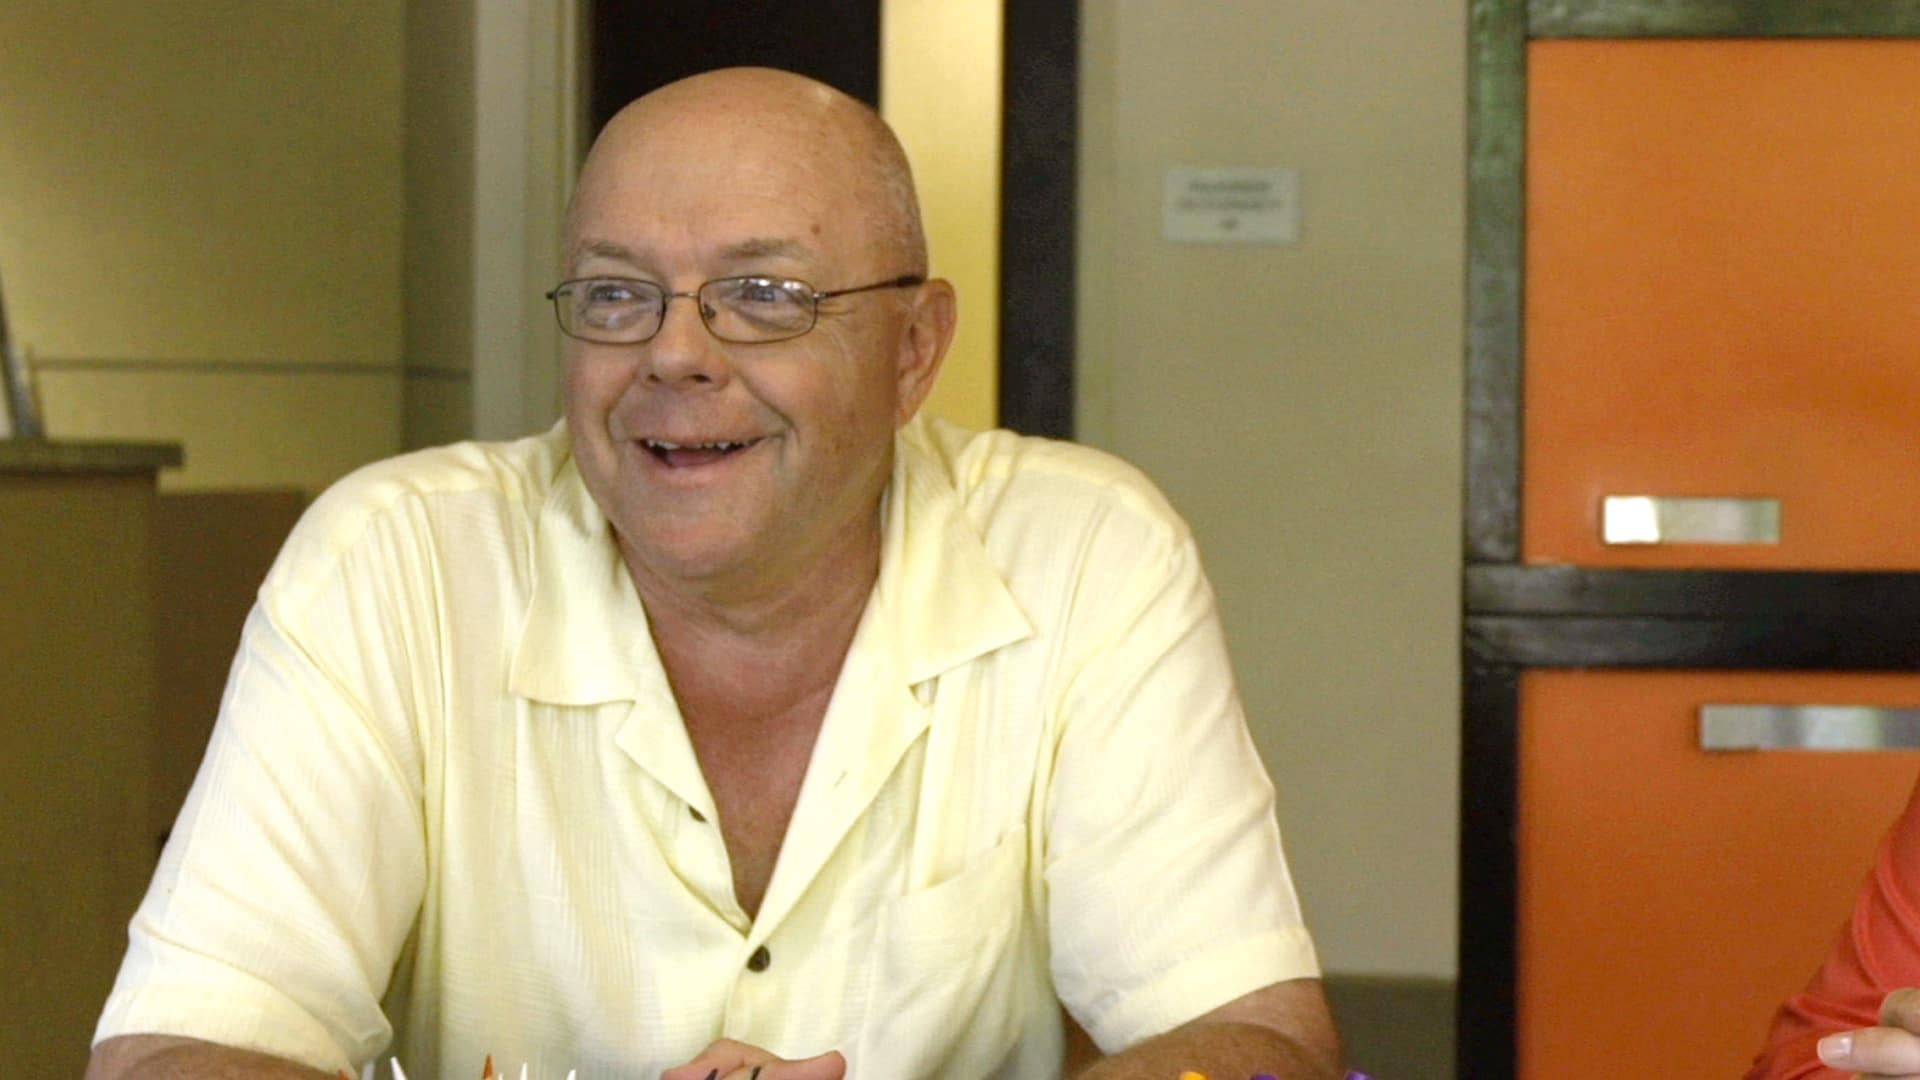 A man with a wide smile wearing a buttoned up short sleeve shirt sits with his hands clasped